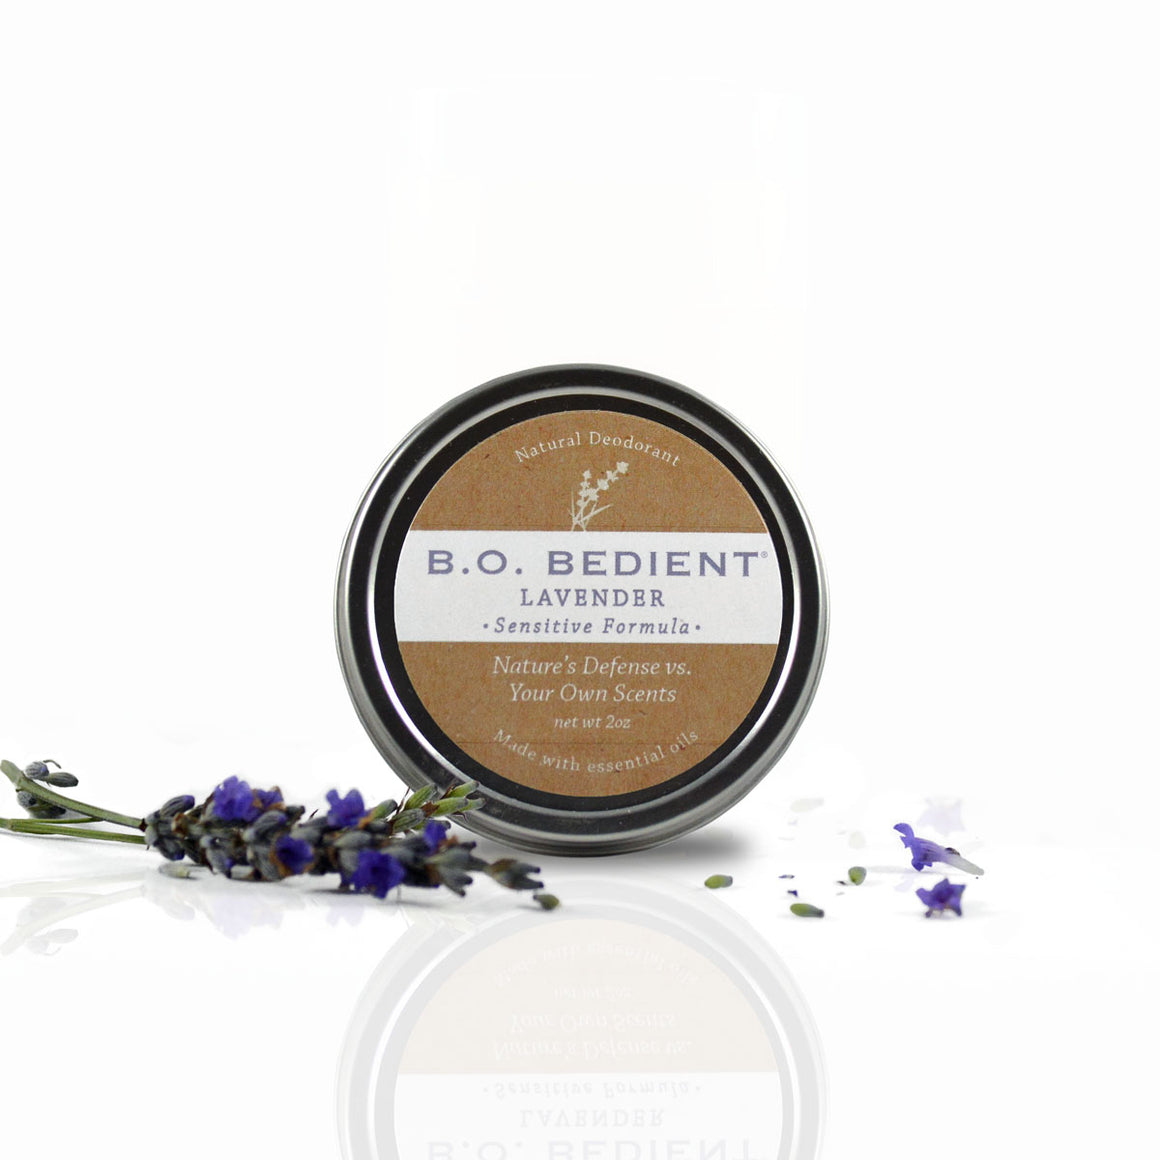 All Natural Deodorant - Lavender Sensitive Tin